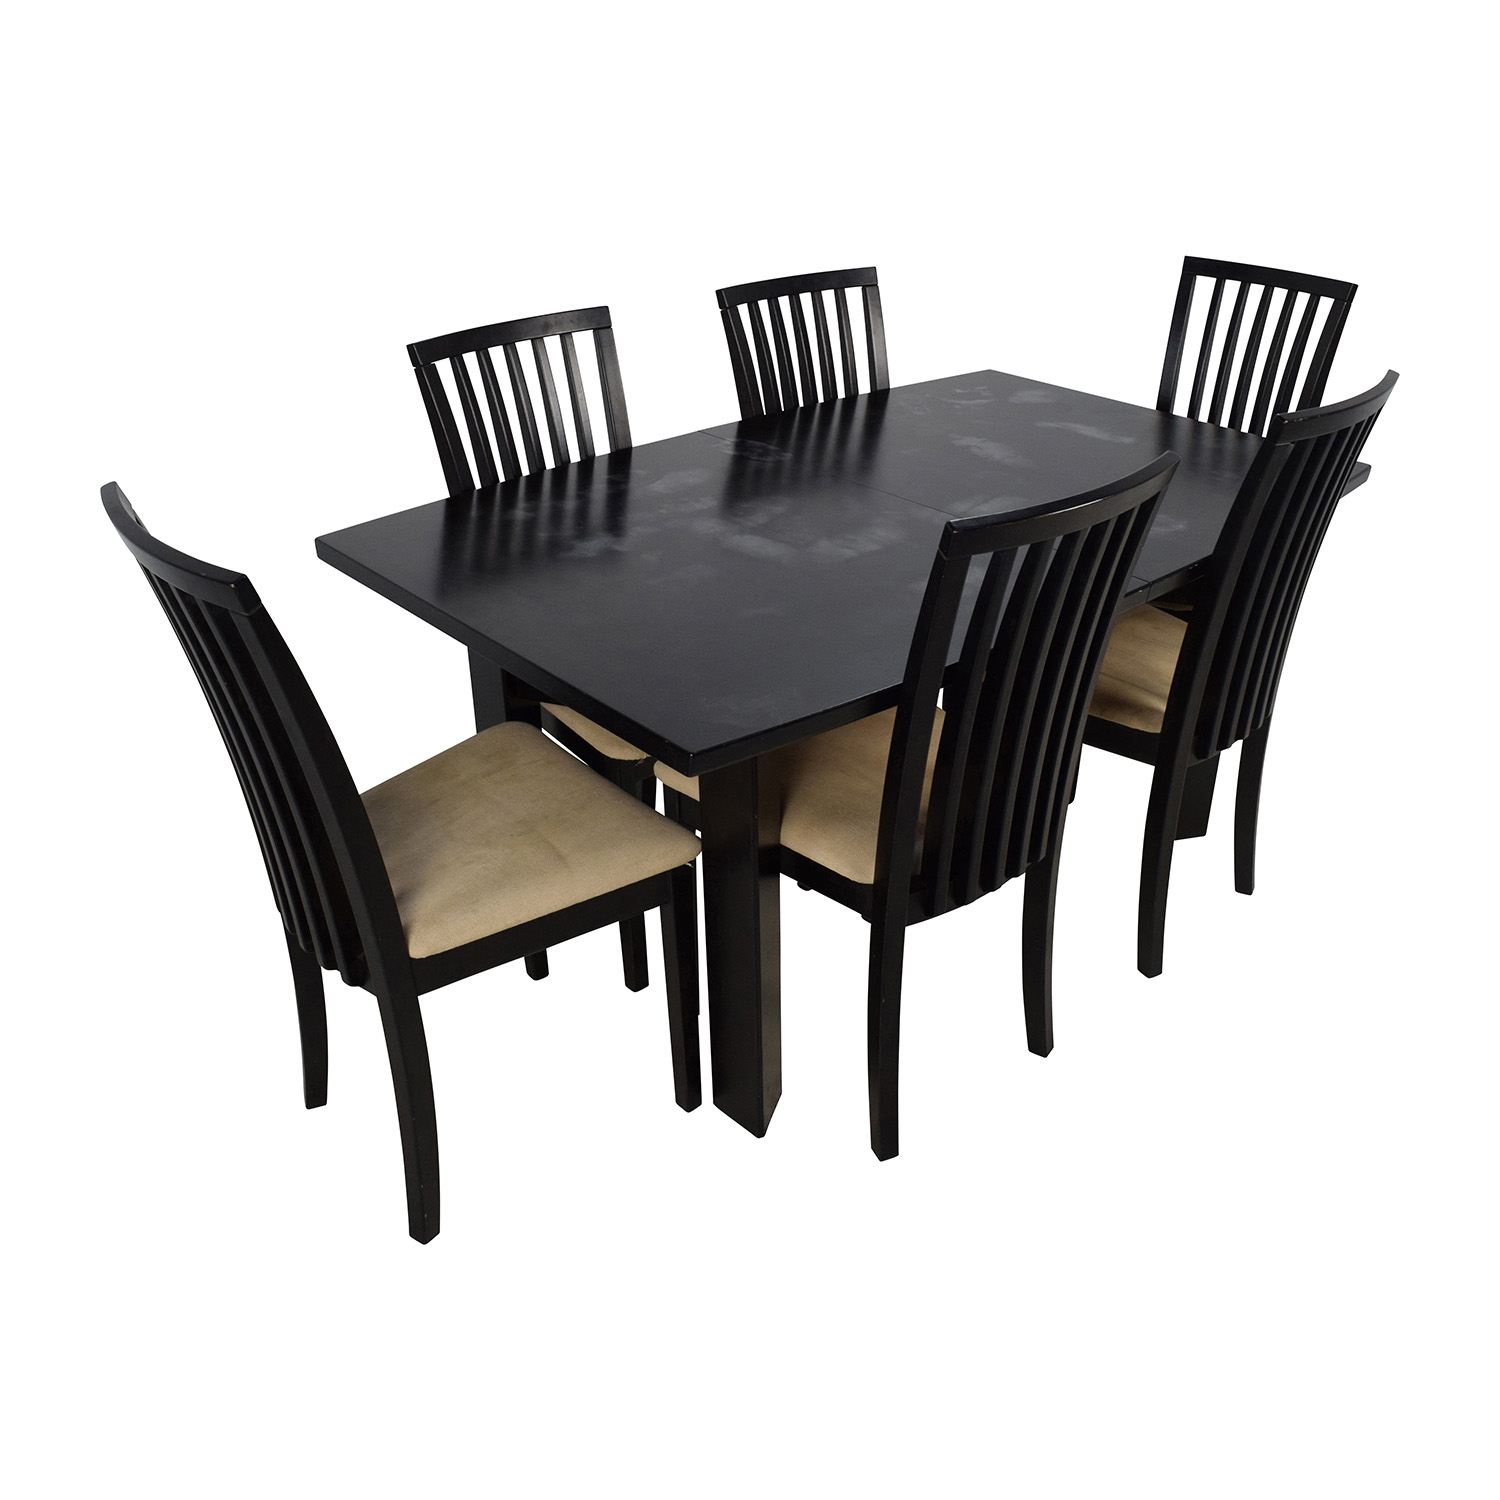 90 off skovby skovby sm 24 dining table with butterfly. Black Bedroom Furniture Sets. Home Design Ideas